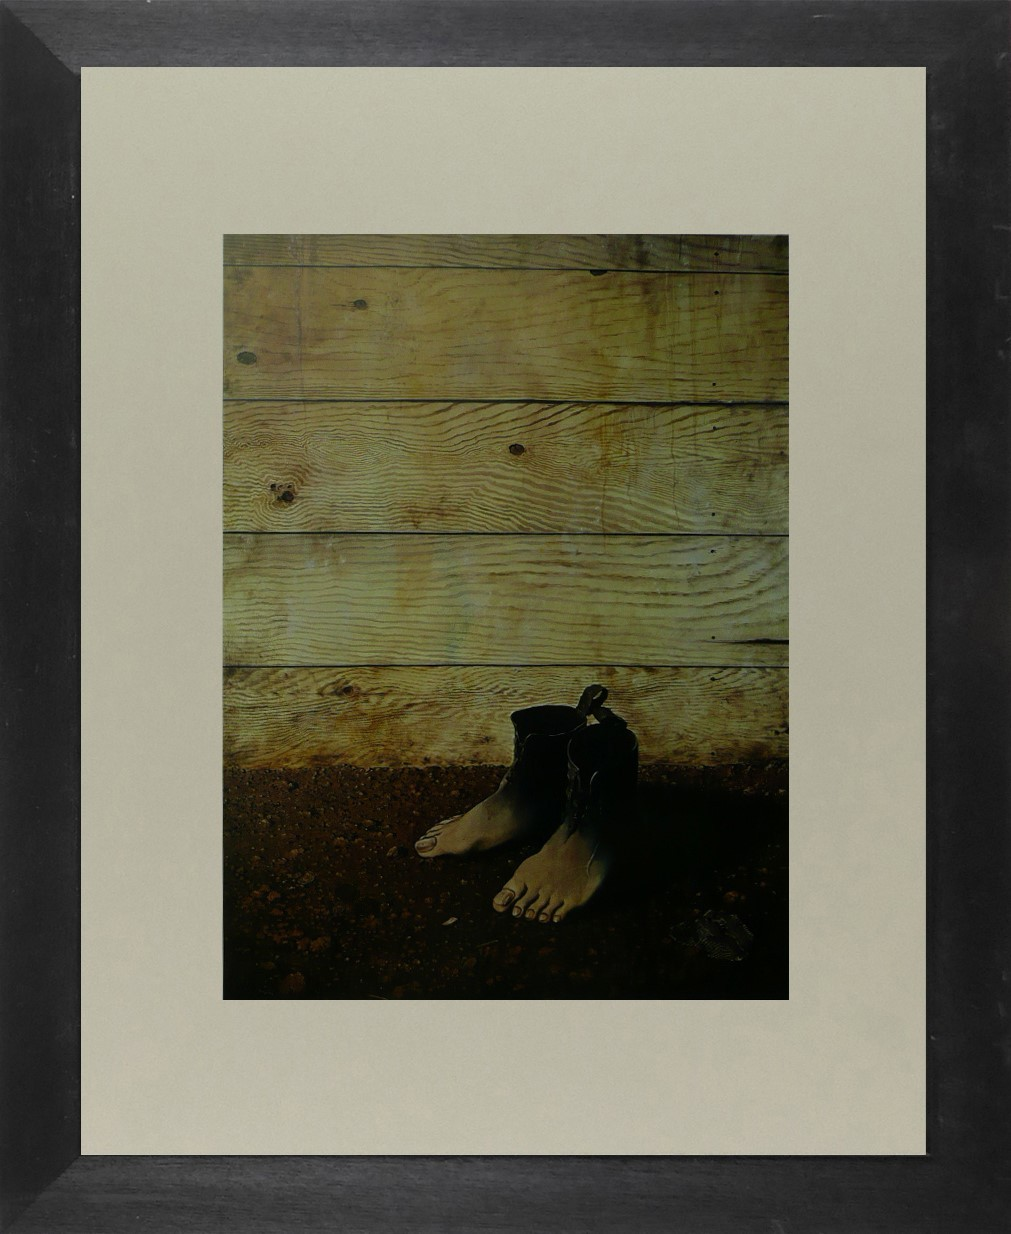 The Red Model - (Feet in front of boarding) - (2) - Ren Magritte - Framed Pictur